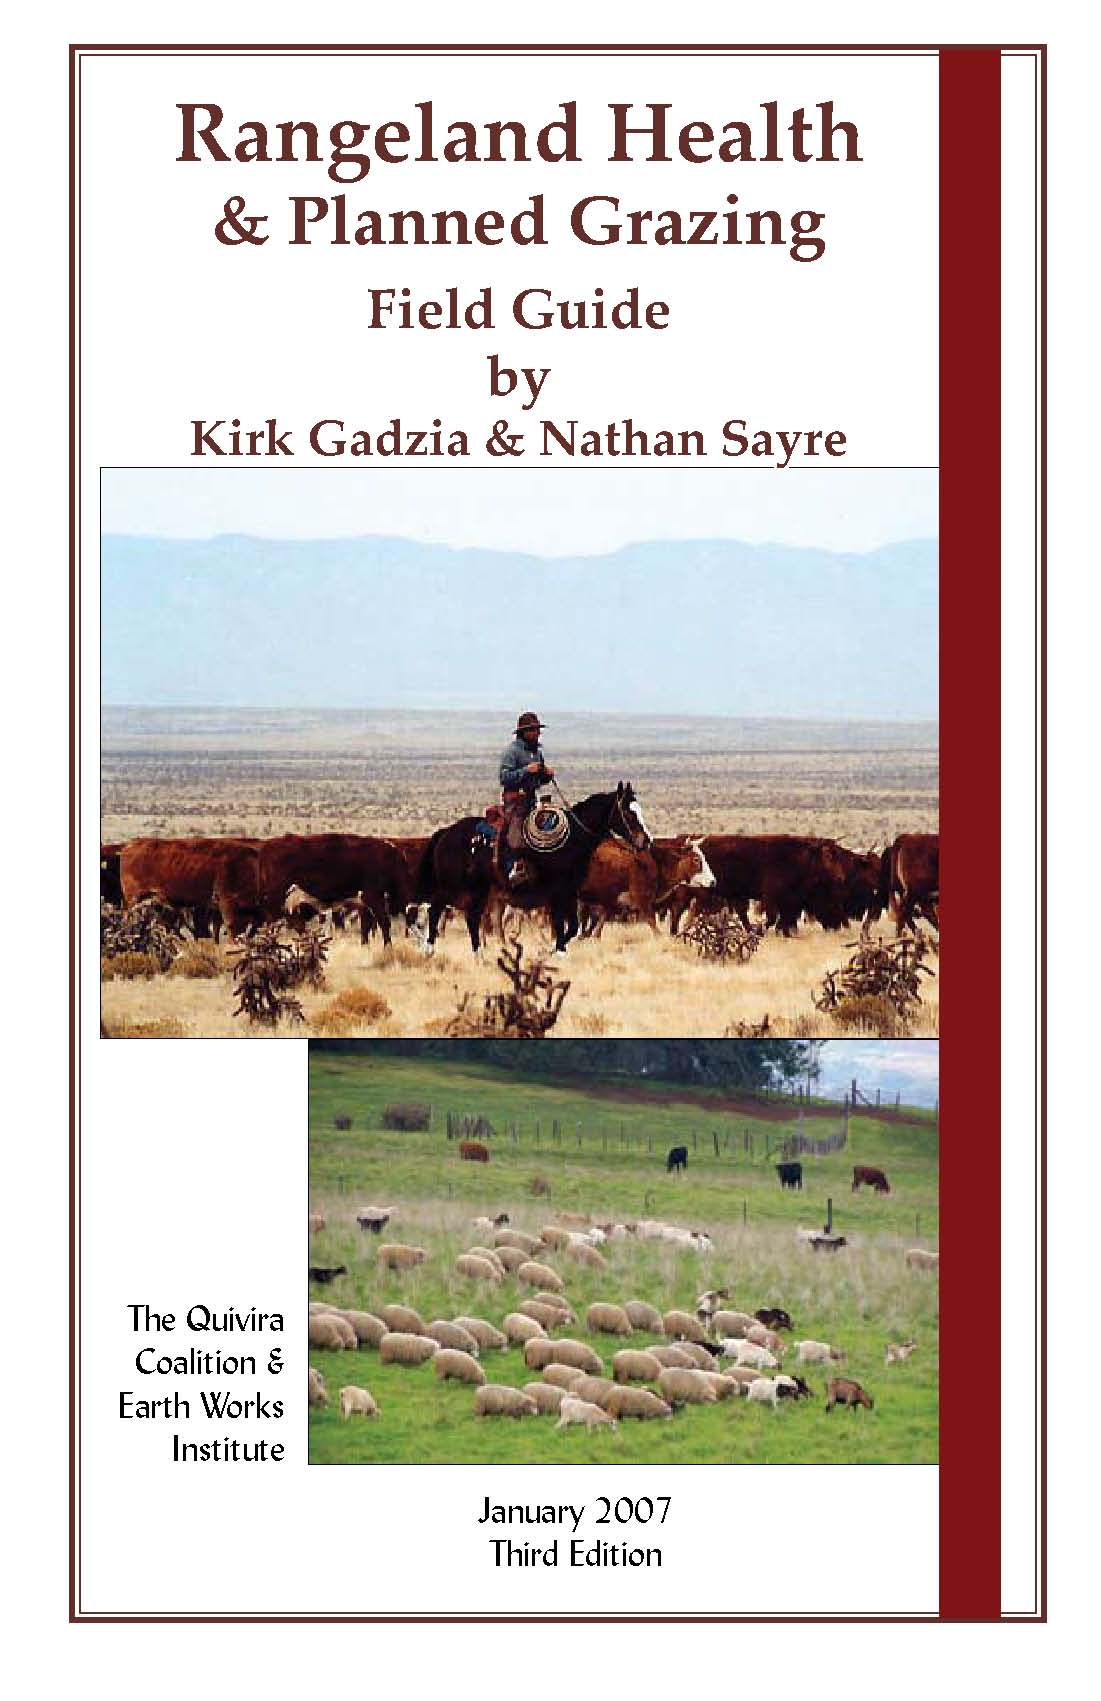 Rangeland Health and Planned Grazing Field Guide, Fourth Edition, April 2009 - by Kirk Gadzia and Nathan Sayre -